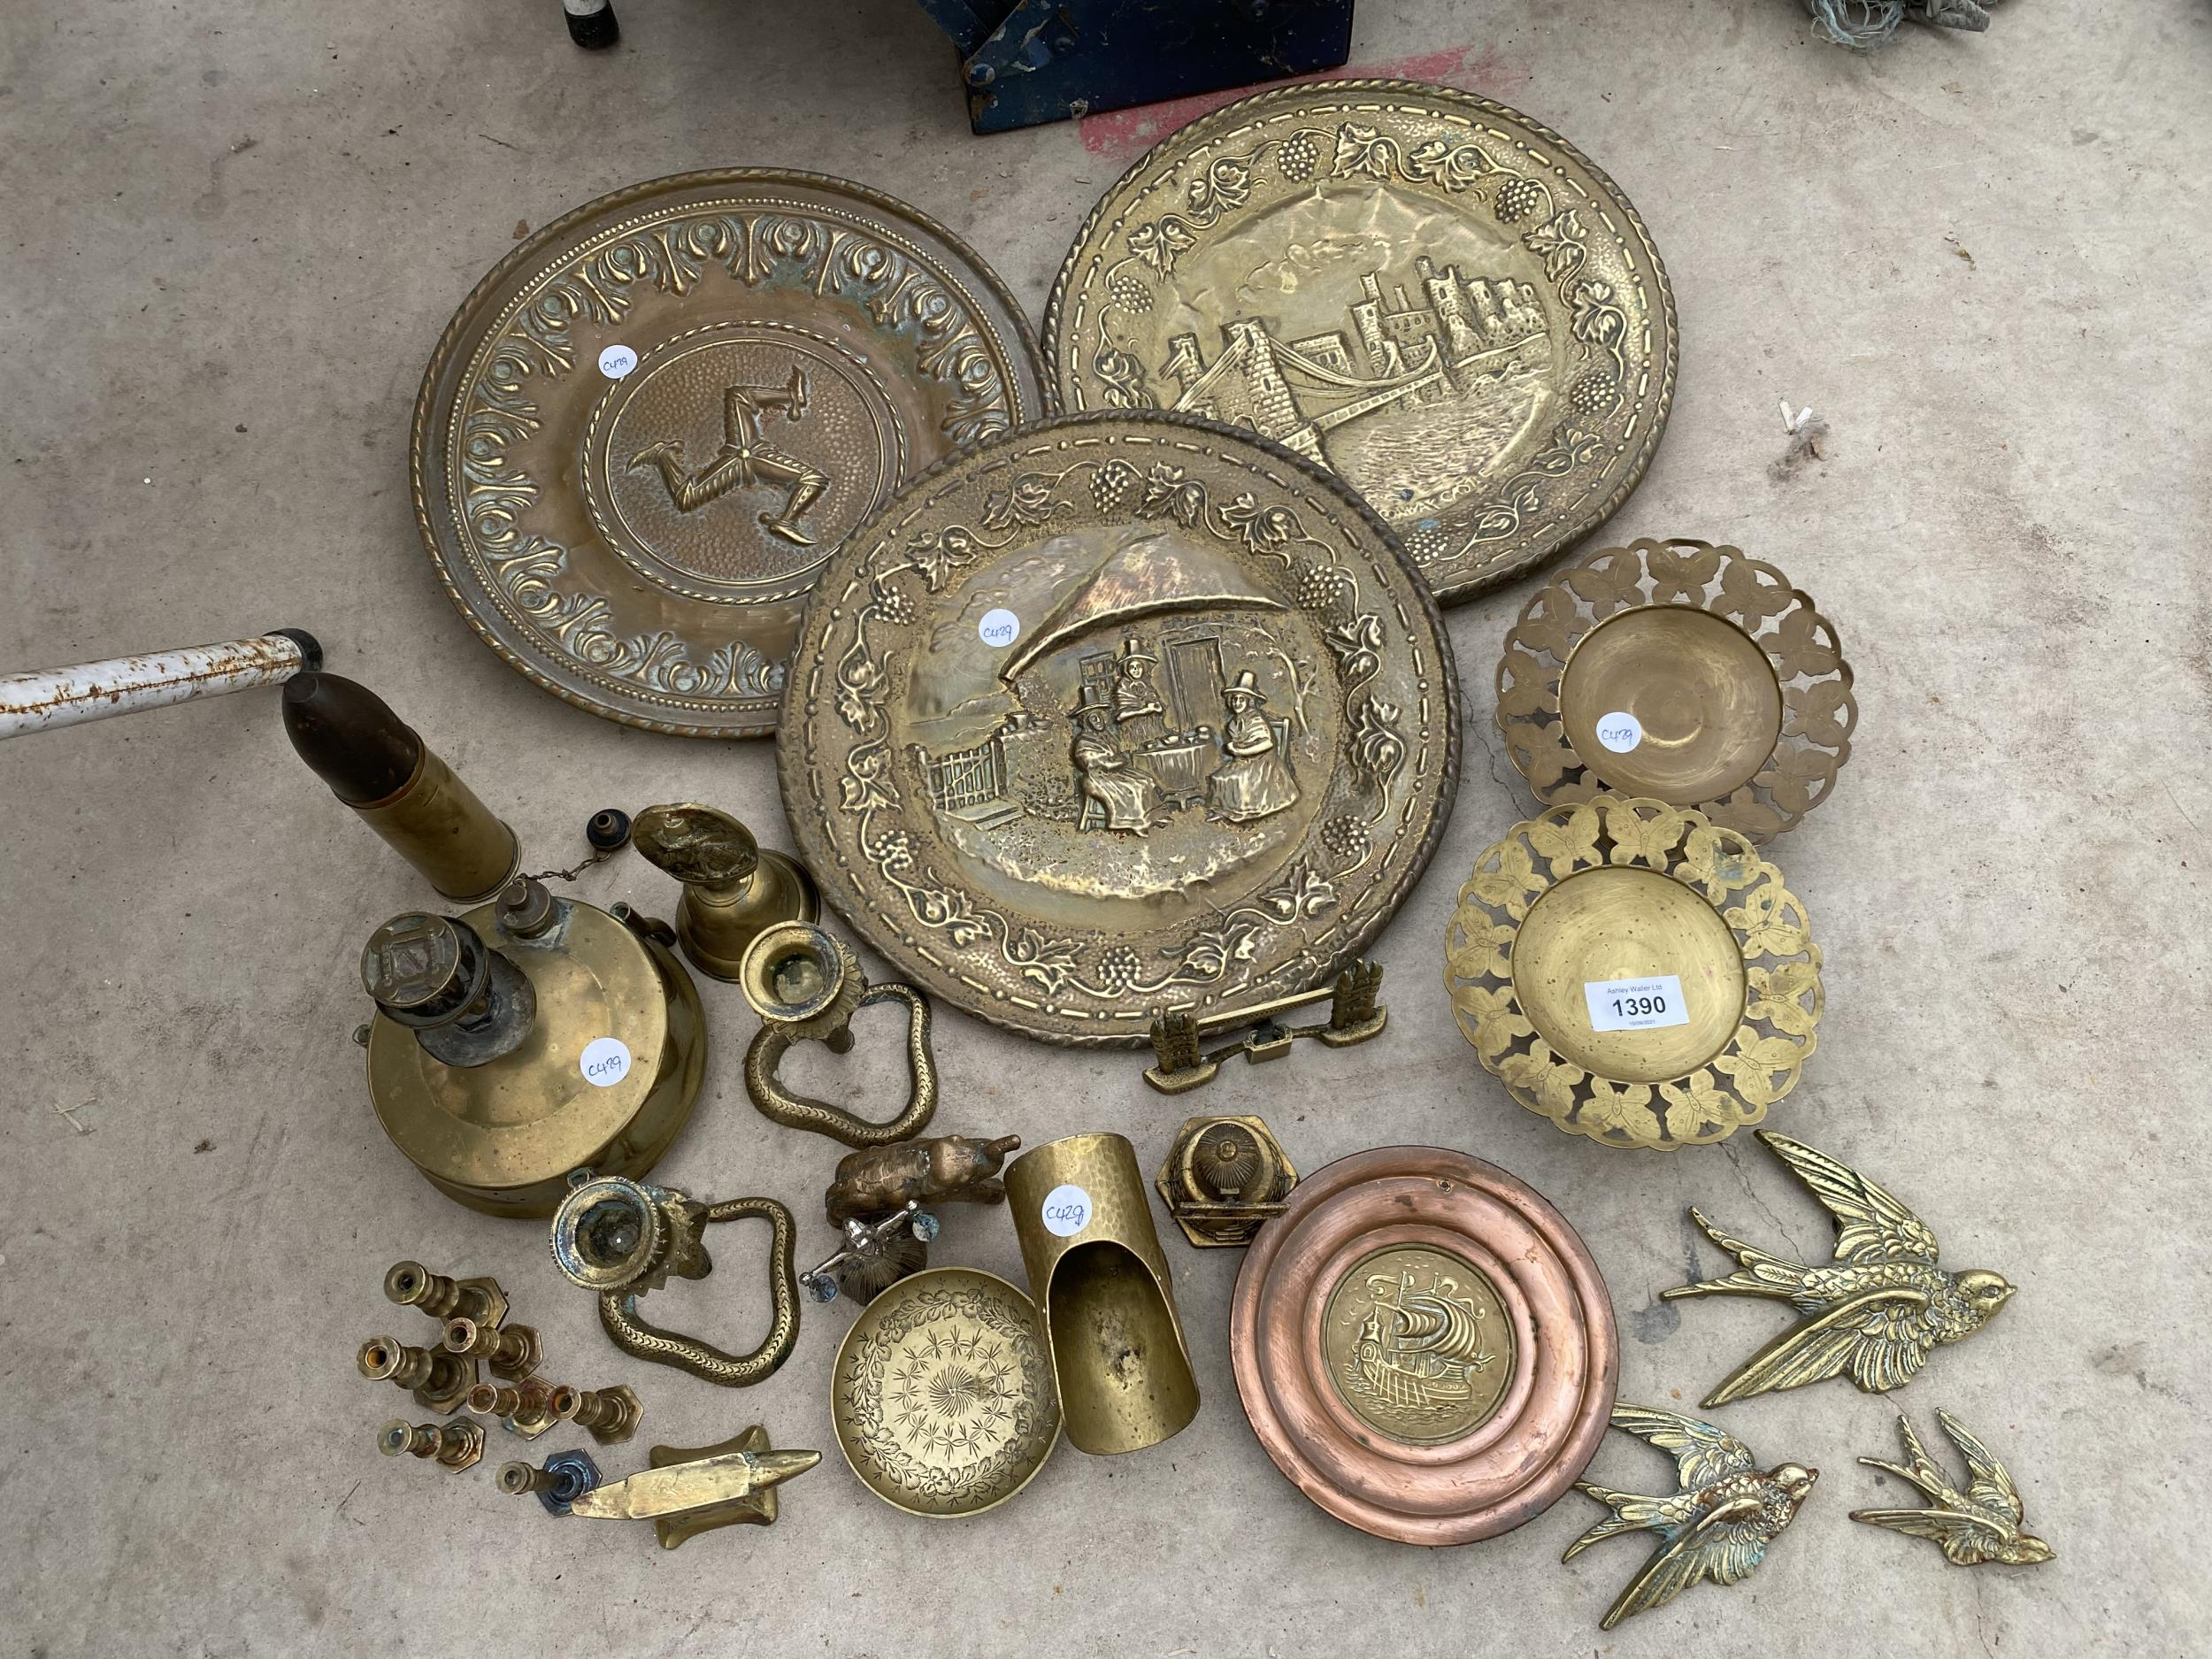 AN ASSORTMENT OF BRASS TO INCLUDE BRASS PLAQUES, CANDLE HOLDERS AND AN OIL LAMP ETC